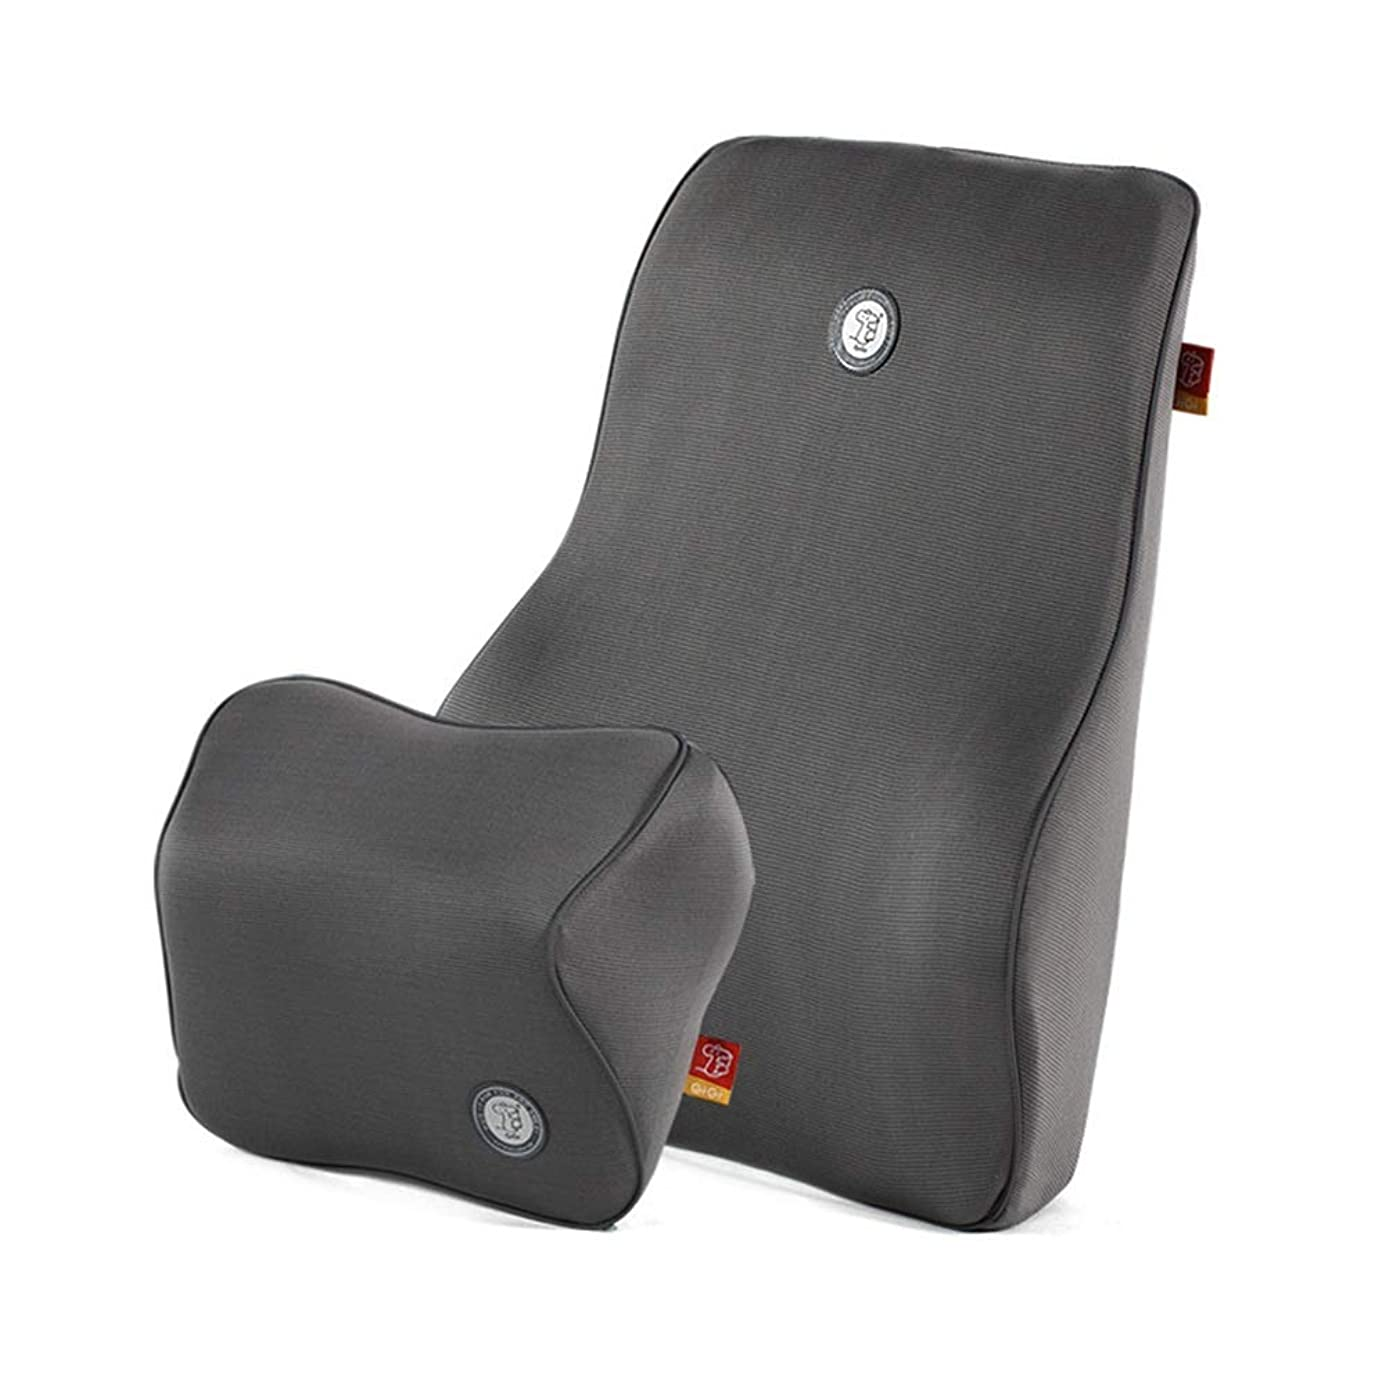 Lumbar pillow Travel Ease Pillow Car Lumbar Support Back Cushion & Headrest Neck Pillow Kit For Seat Bamboo Charcoal Memory Foam Erognomic Design Universal Fit For Car Seat With Back Pain Relief